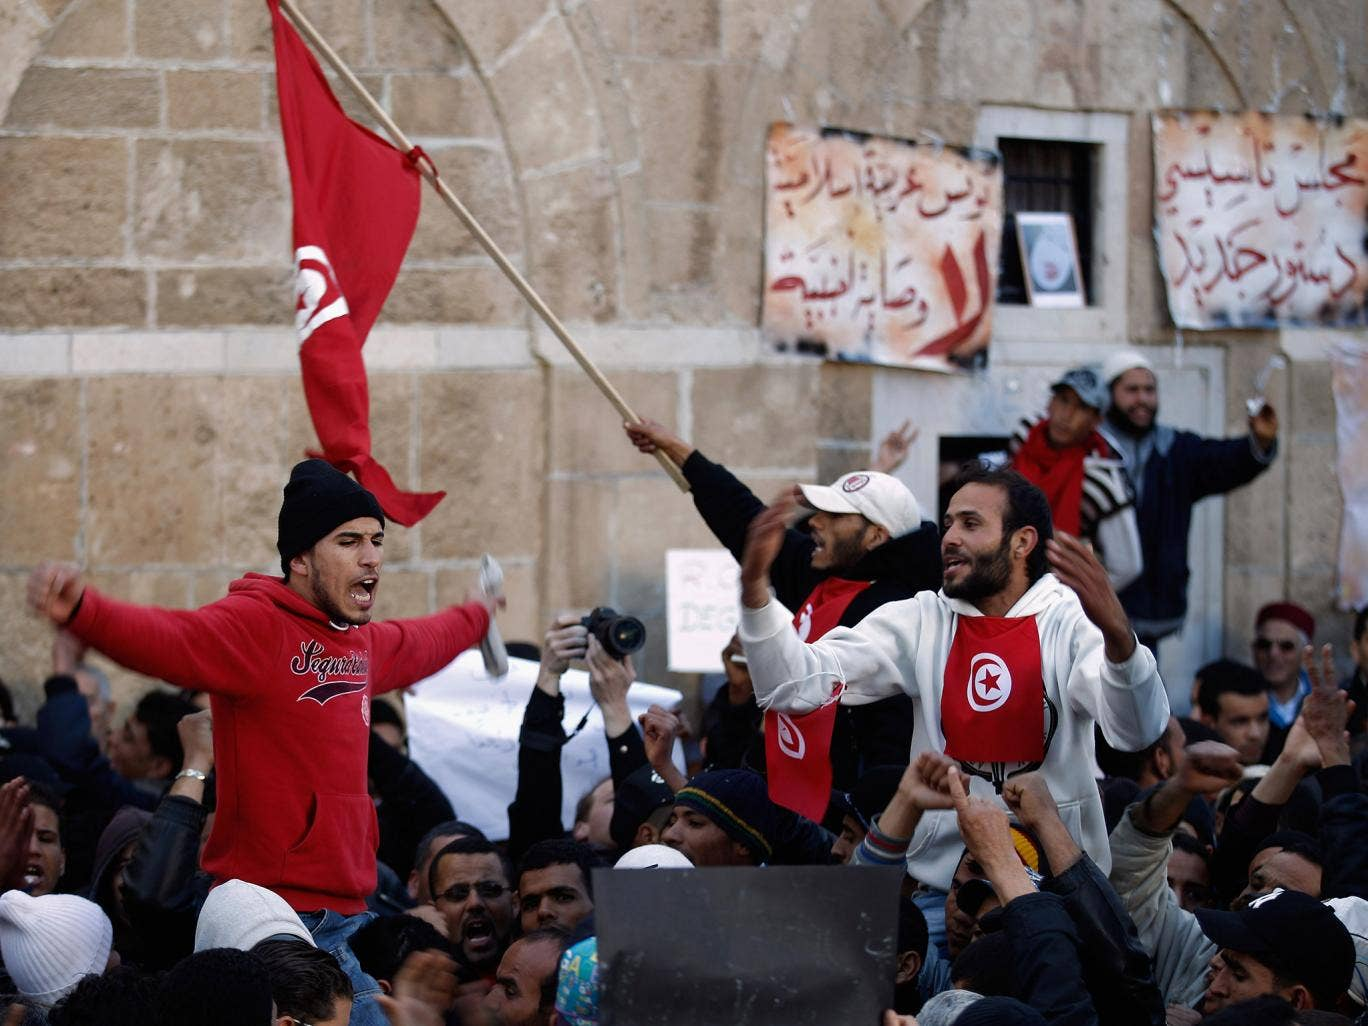 The 2011 uprising kick-started the Arab Spring